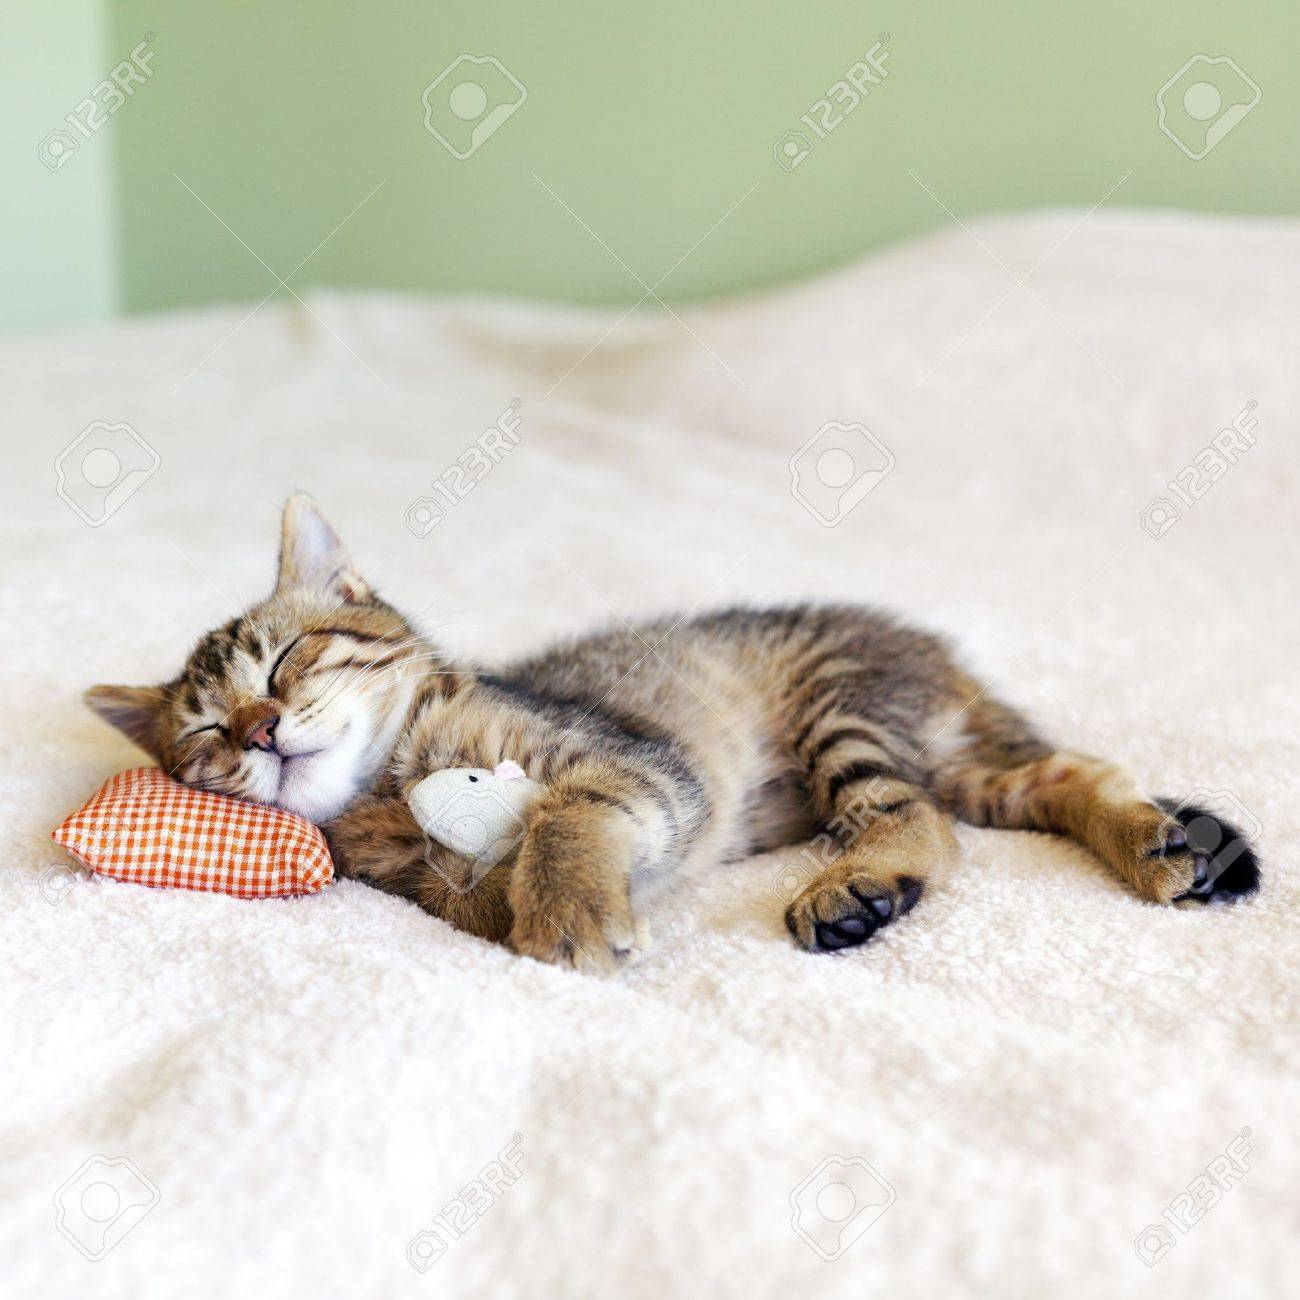 Small Kitty With Red Pillow and Mouse Stock Photo - 17472999